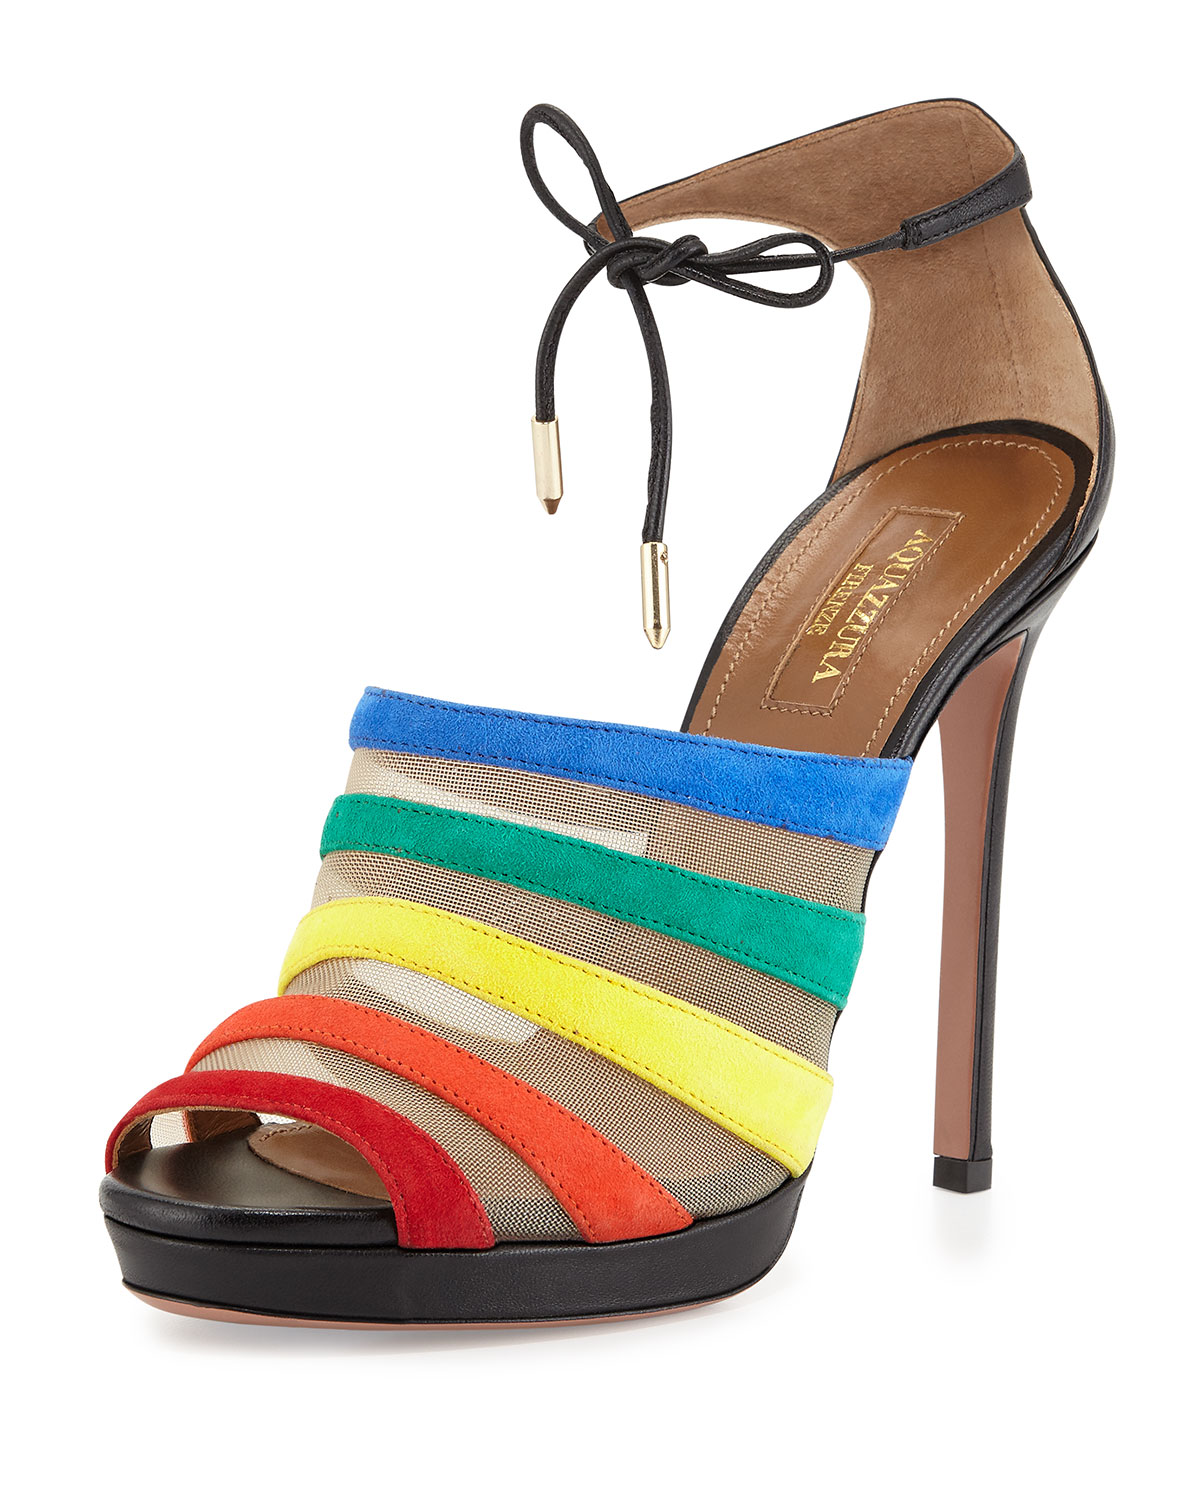 Aquazzura Graphic Suede Sandals with mastercard giCIw